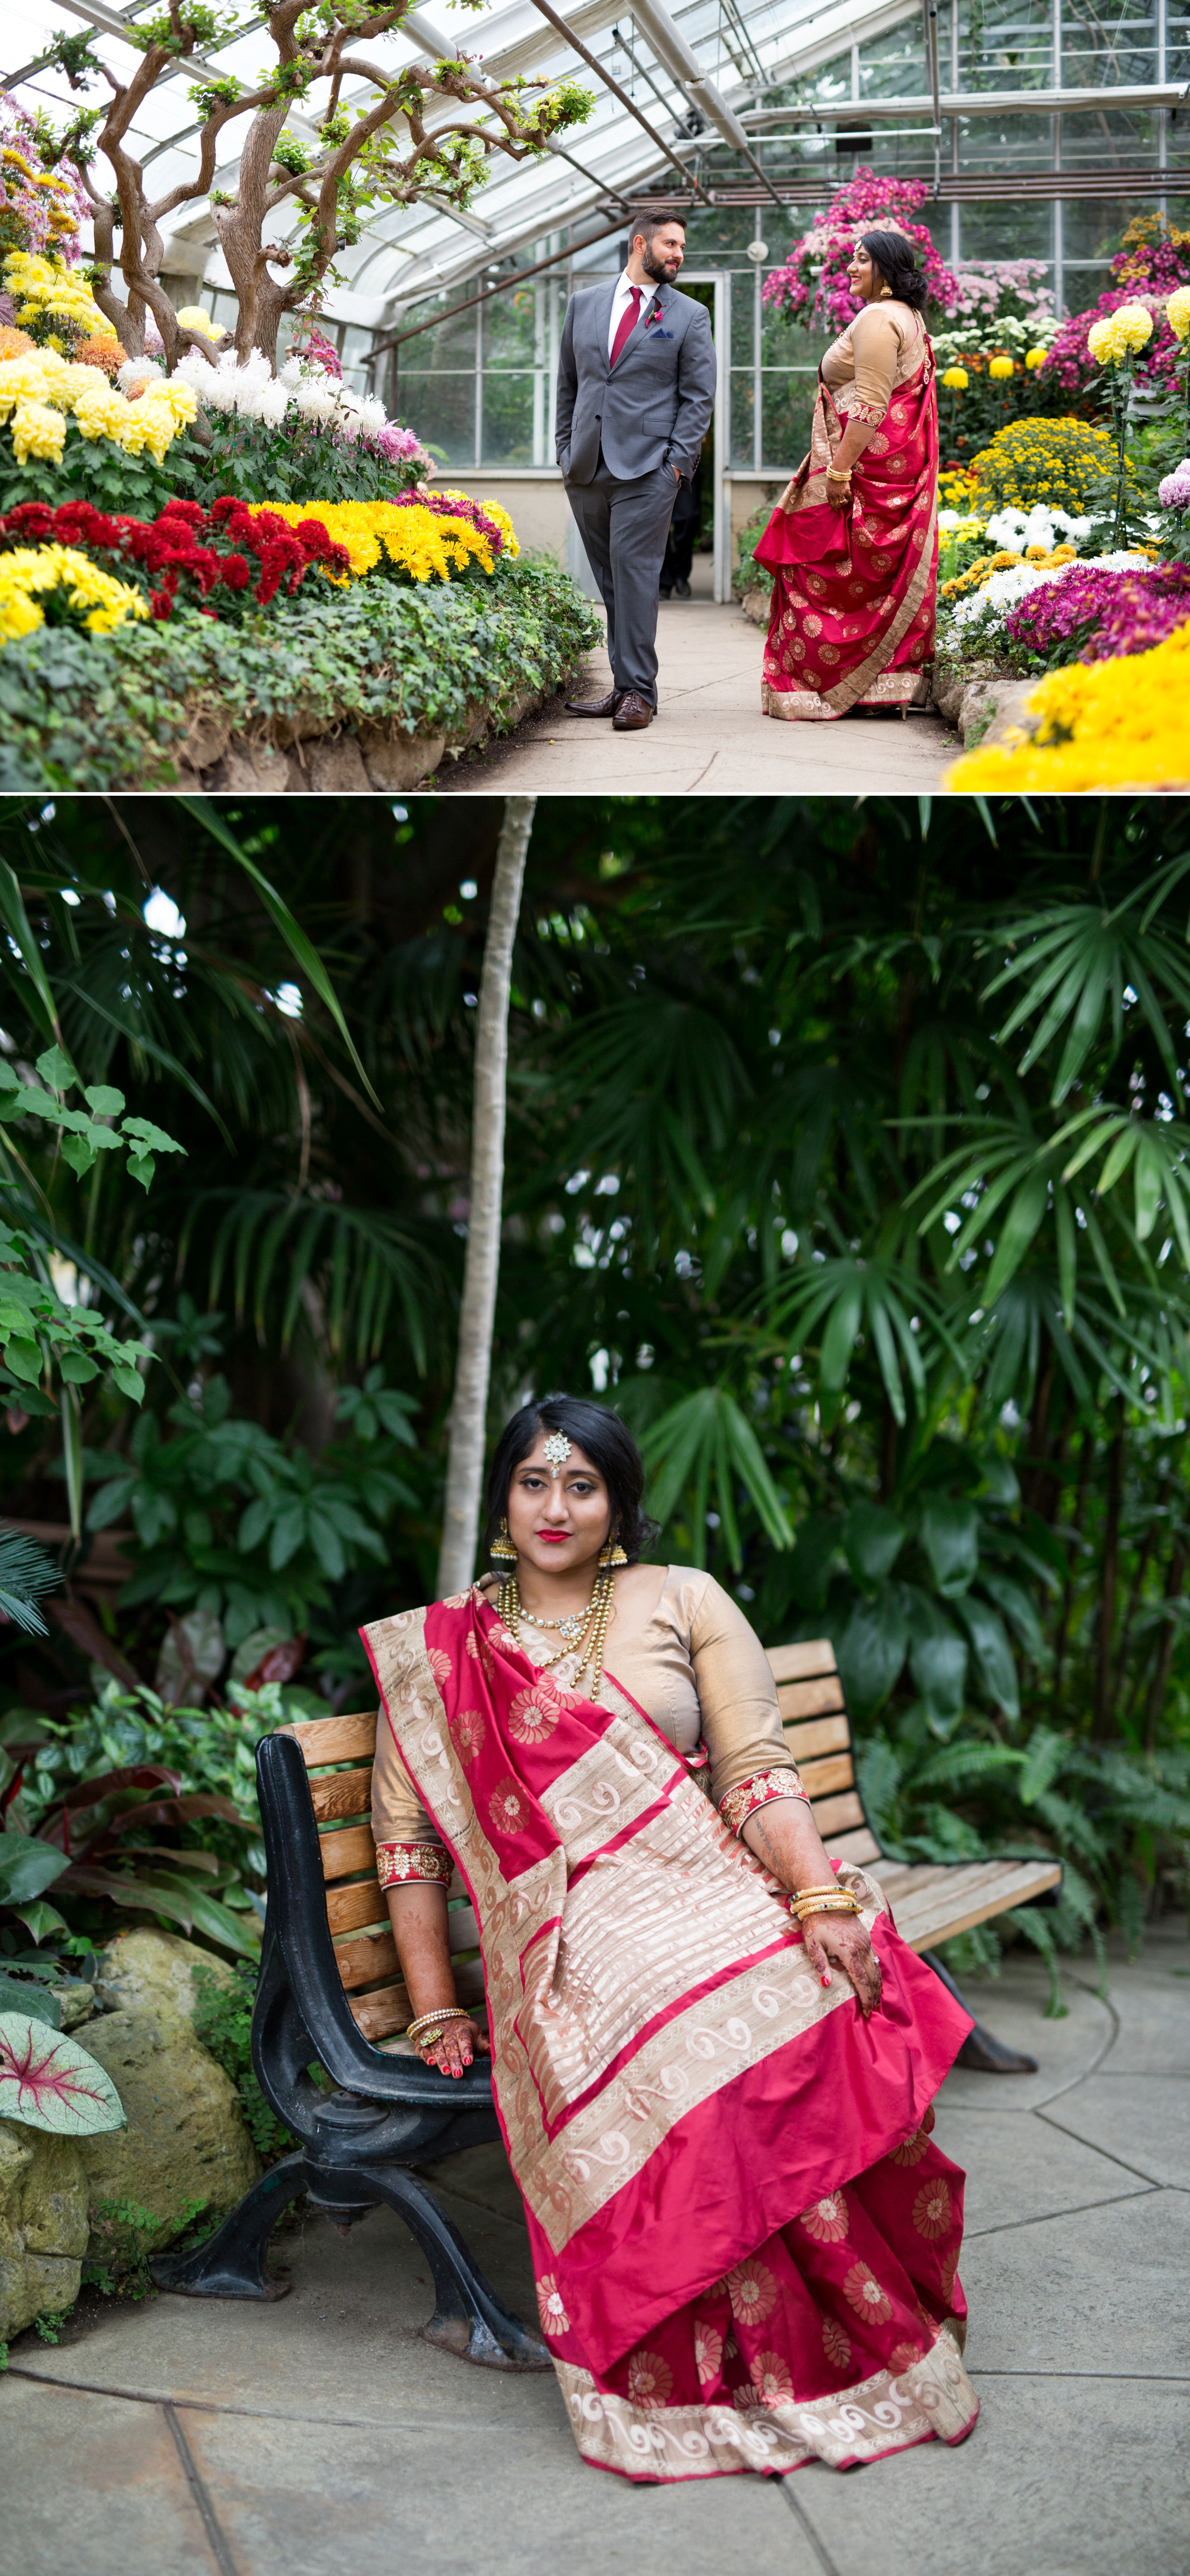 Bride Greenhouse Indian Wedding Zsuzsi Pal Photography